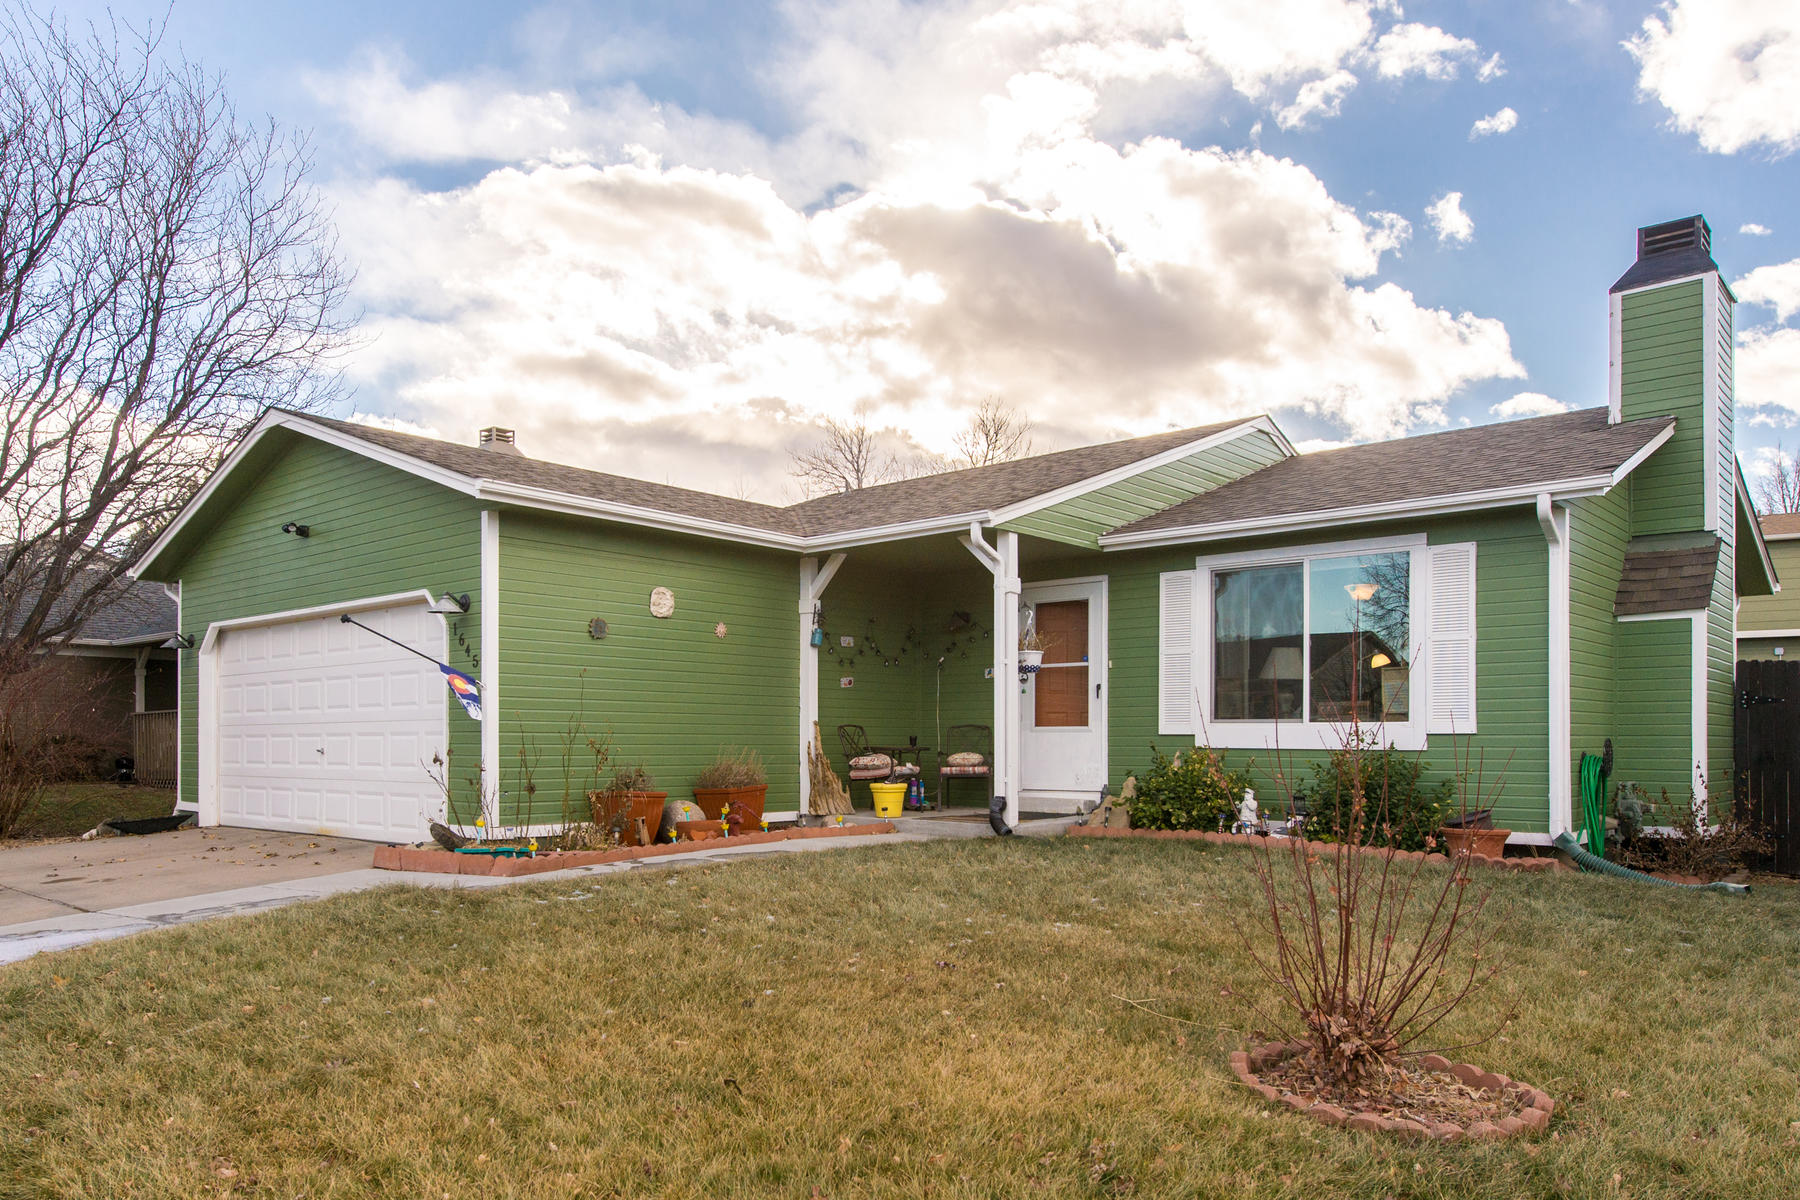 Property for Active at Great opportunity to own this updated home with 4 bedrooms and 2 bathrooms. 1645 S Fundy St Aurora, Colorado 80017 United States